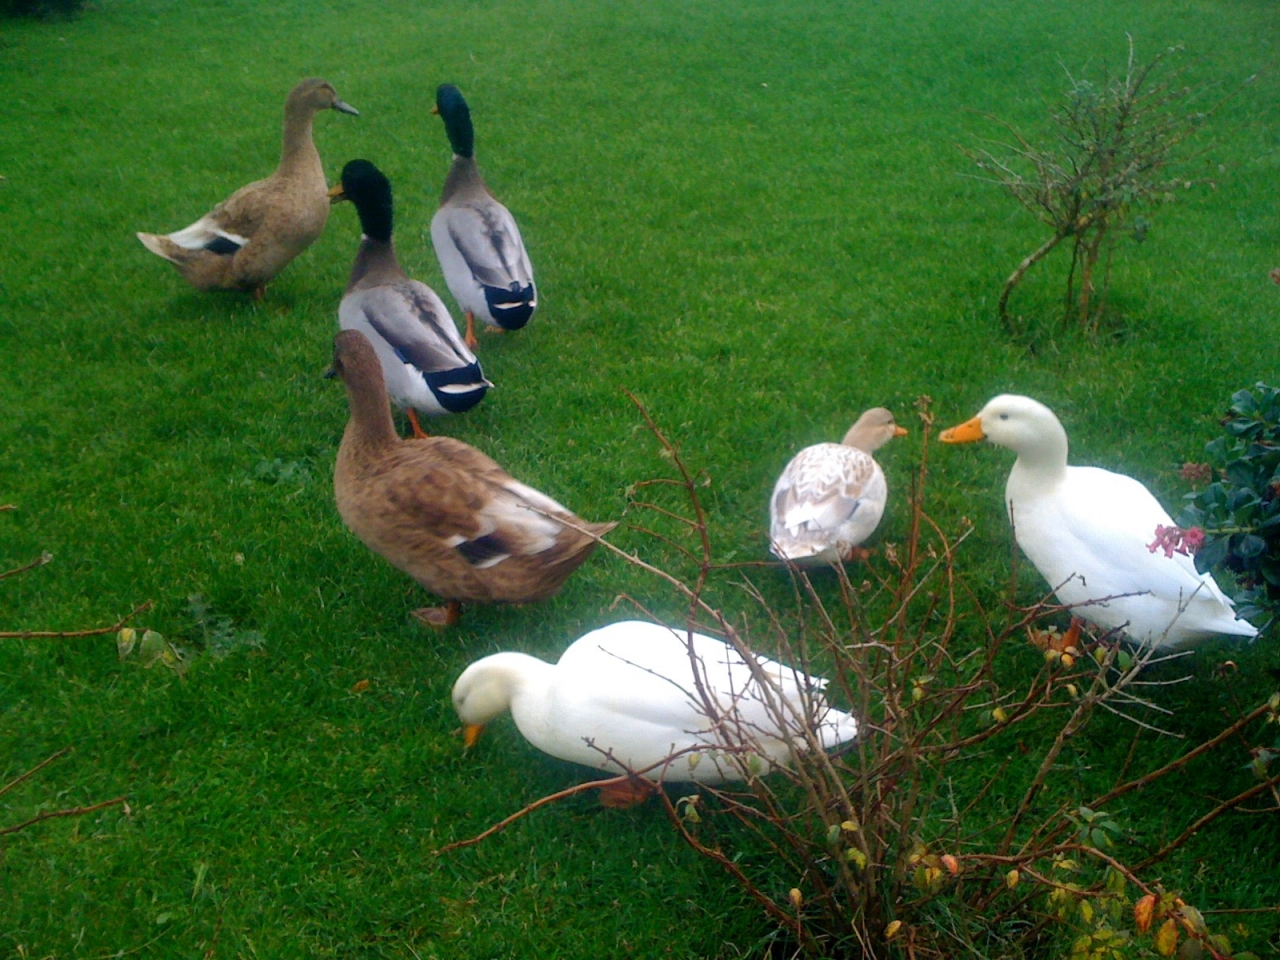 ...and a quack quack there...